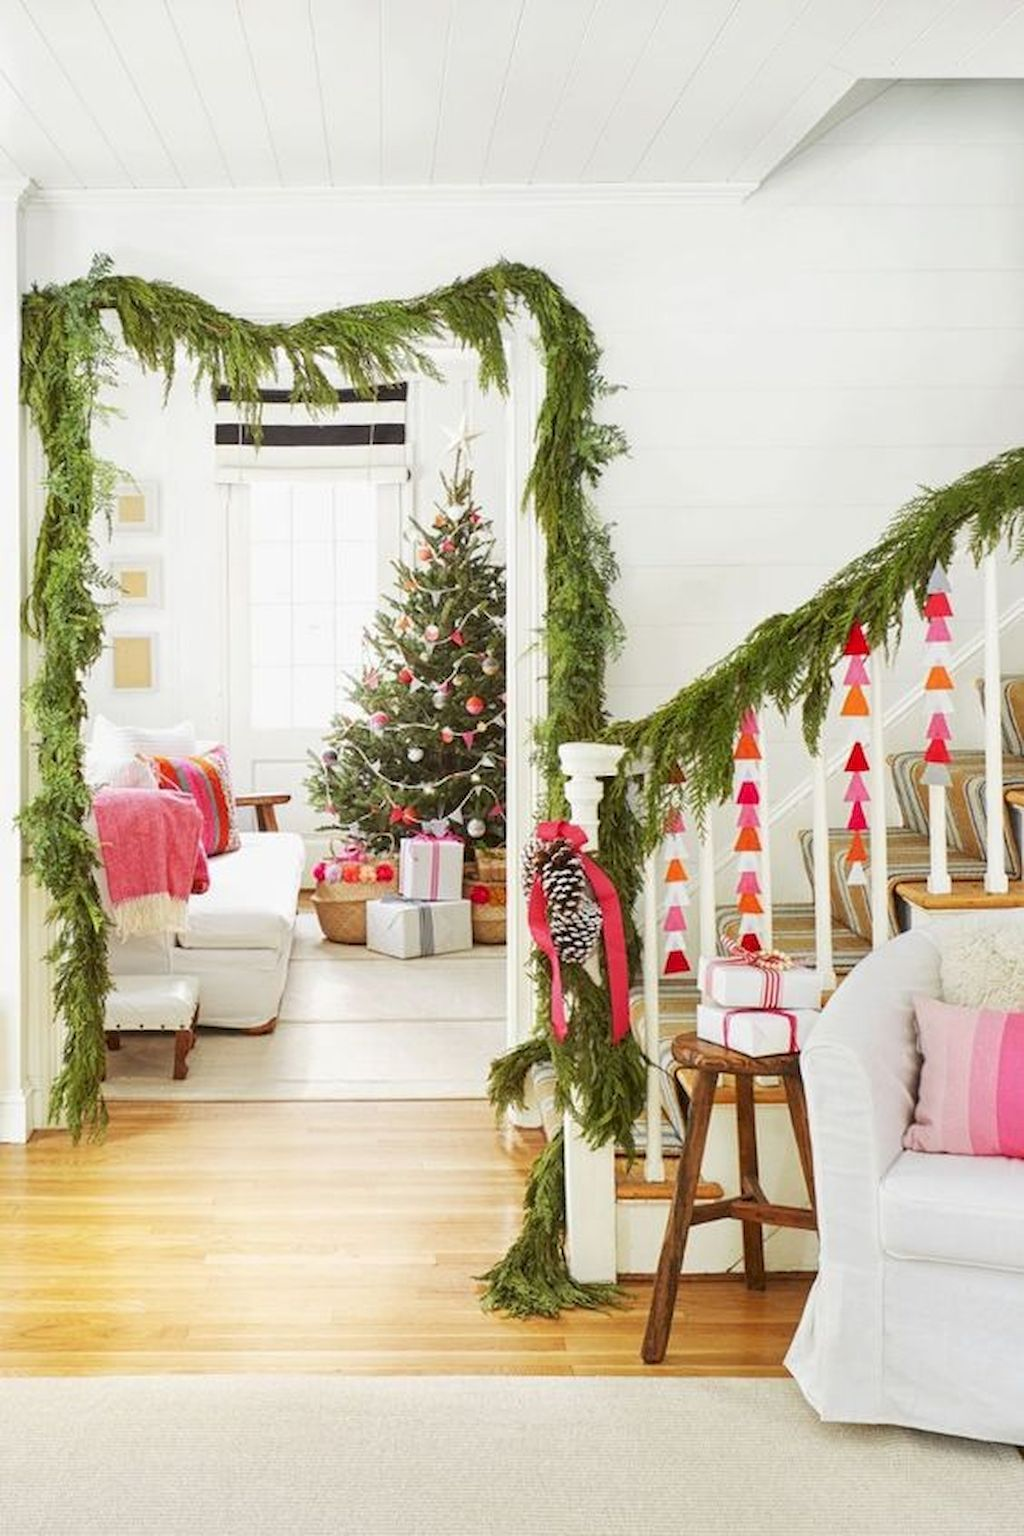 Decorate your home for less with savvy ideas affordable impactful updates see how to give the rooms in  boost diy decorating projects also cheap and easy christmas apartment rh pinterest